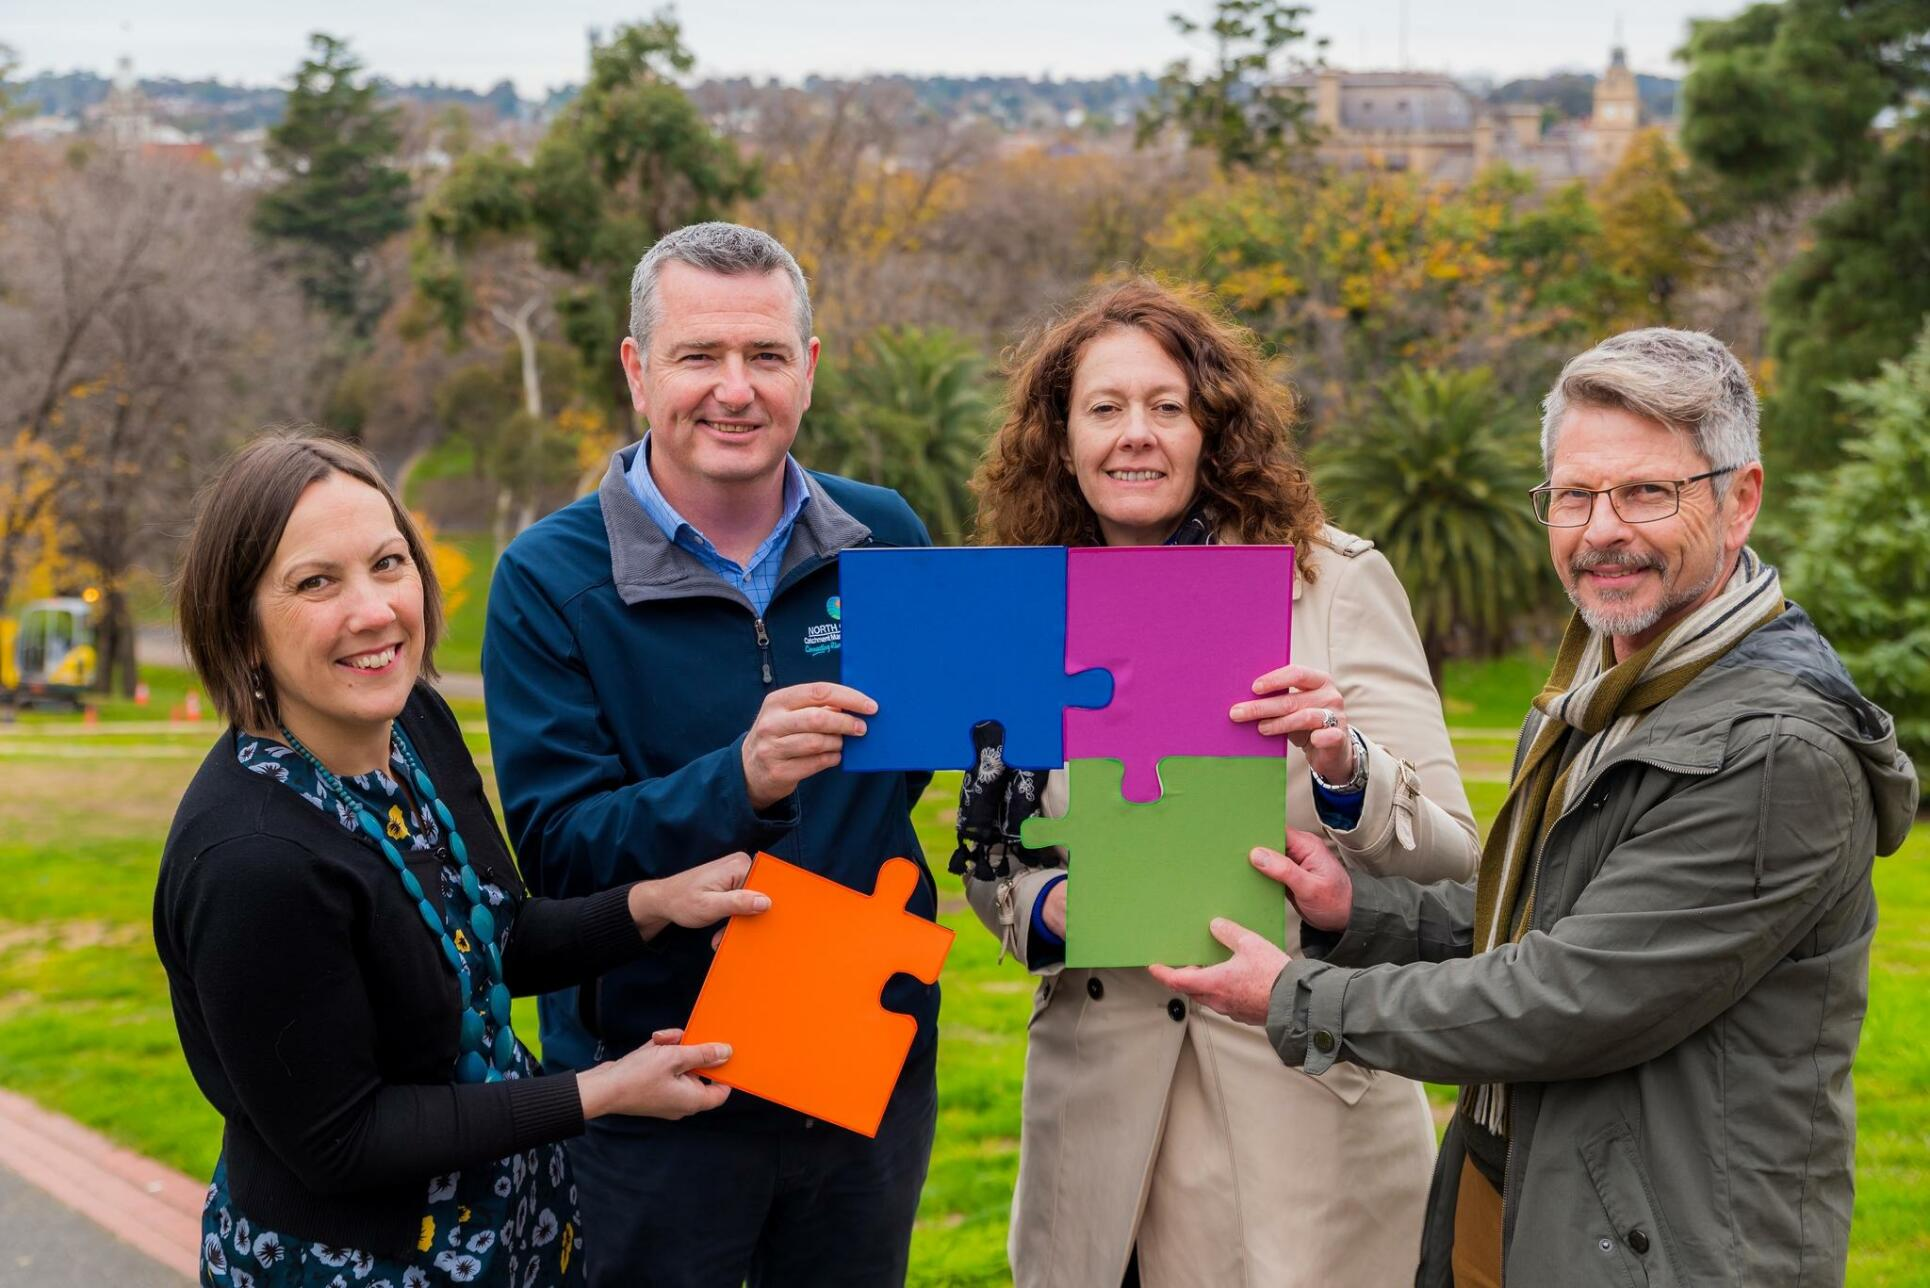 Bendigo Organisations CONNECT to Focus on the Big Issues